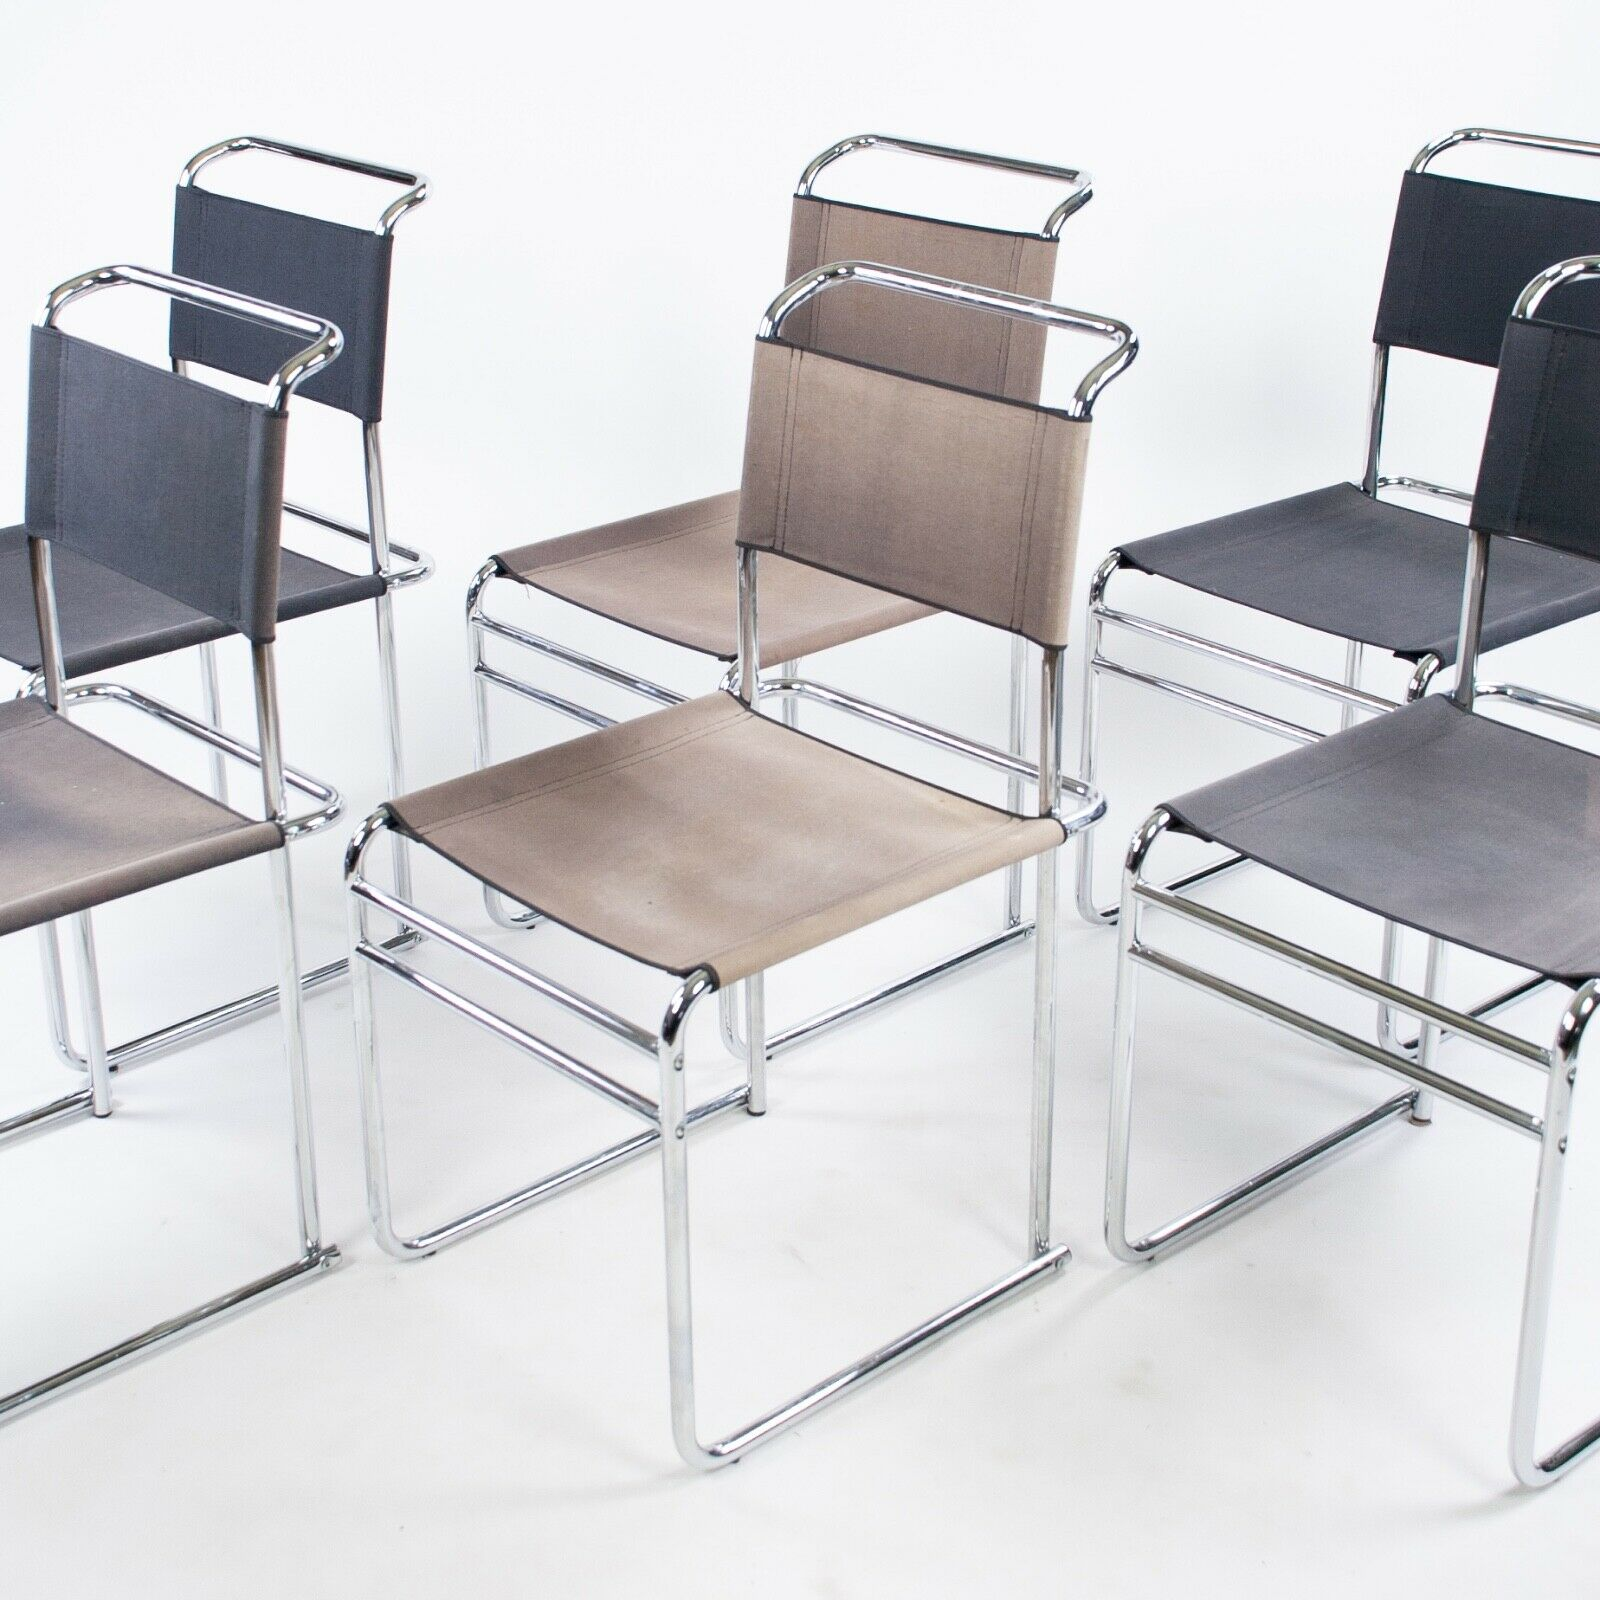 Prime Details About Set Of 6 Marcel Breuer B5 Dining Chairs Chrome Canvas Bauhaus Tecta Thonet 1960S Pdpeps Interior Chair Design Pdpepsorg